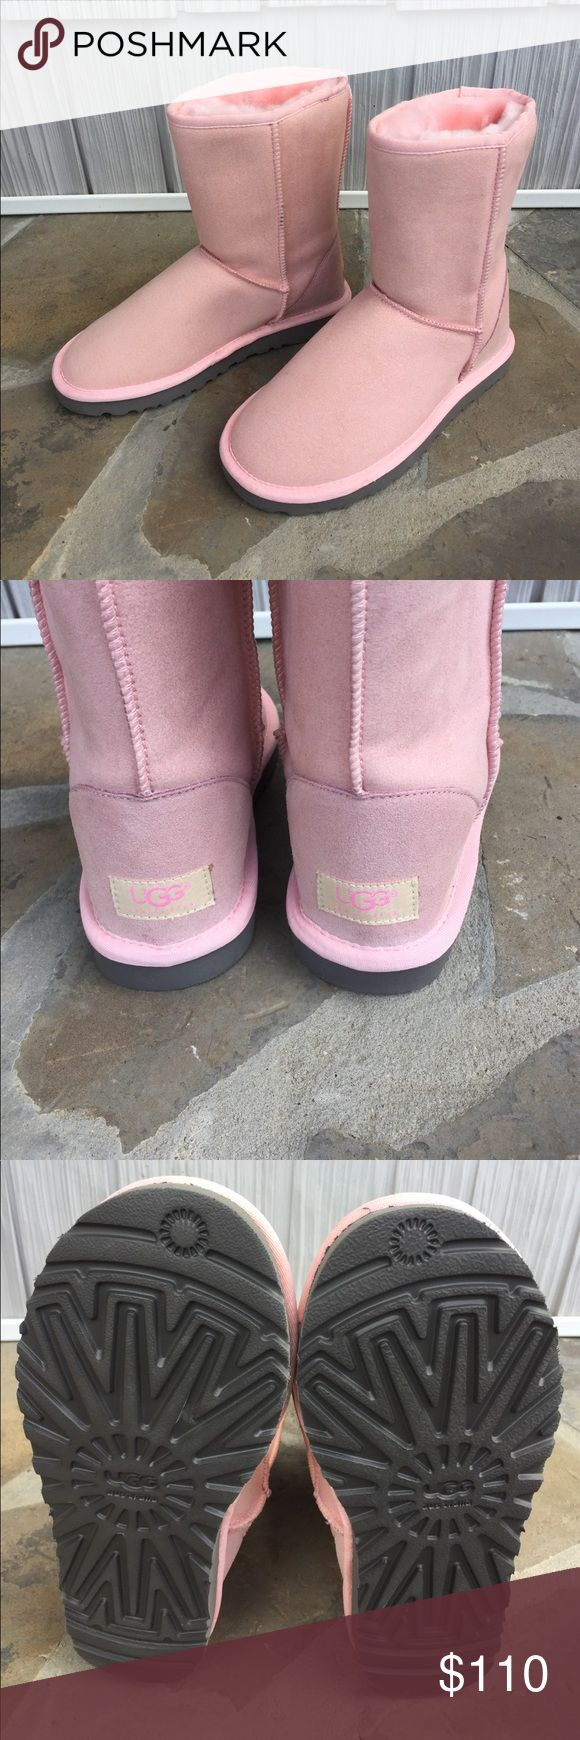 UGG Boots Everyone needs a pair of pink UGGS and these are spectacular!  Leather uppers and pink sheepskin lining. Like new except for small speck on left boot. Shown in photo. Size 7 UGG Shoes Winter & Rain Boots